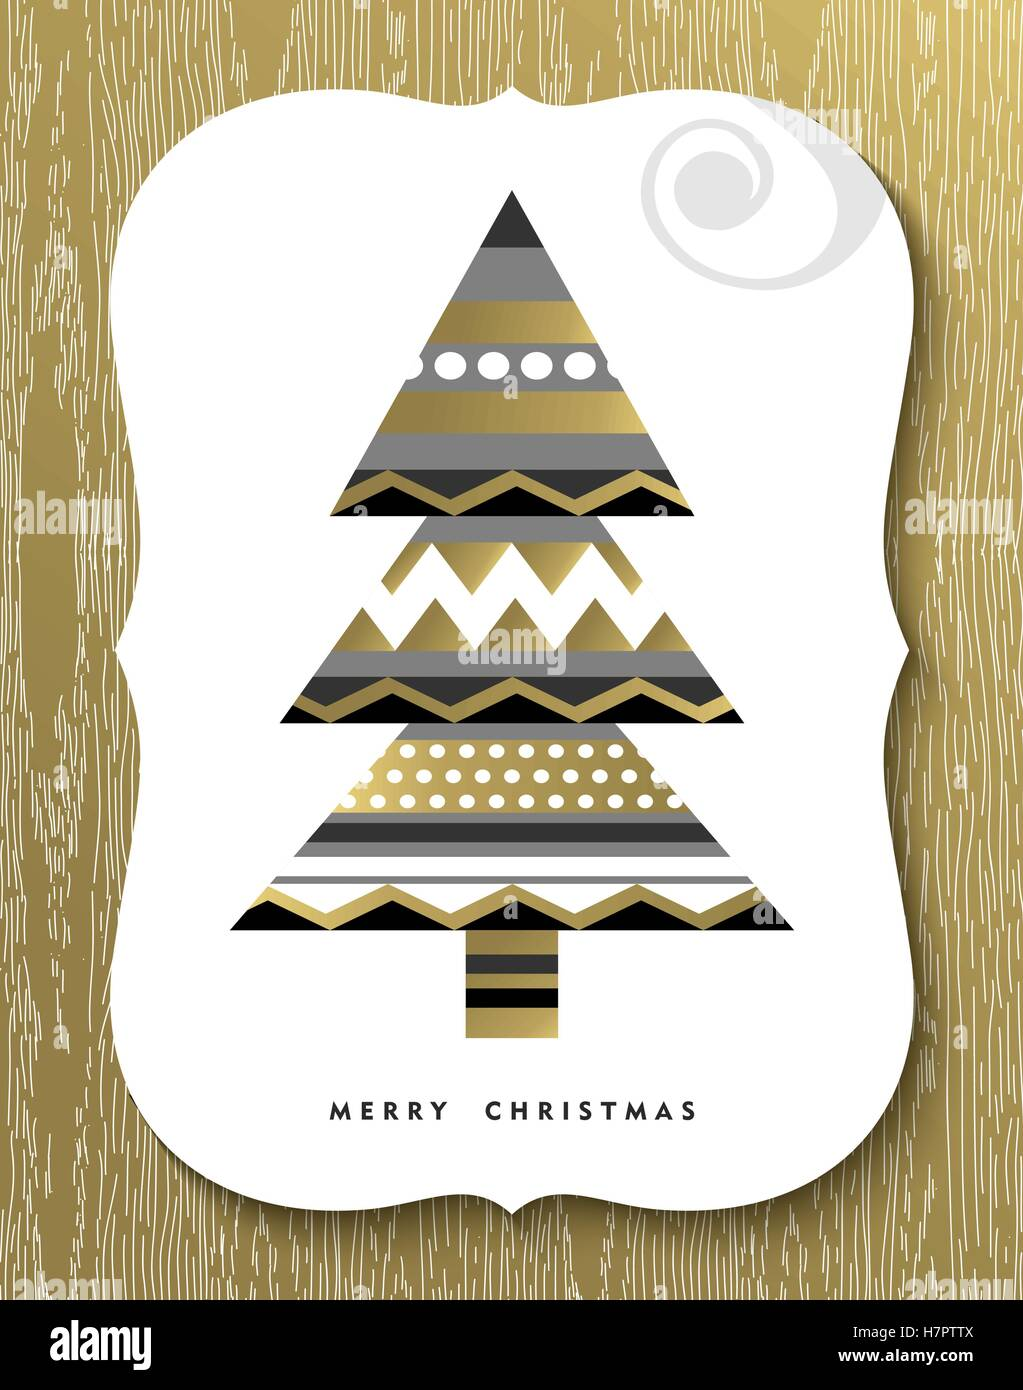 Gold Merry Christmas Greeting Card Design With Modern Xmas Pine Tree